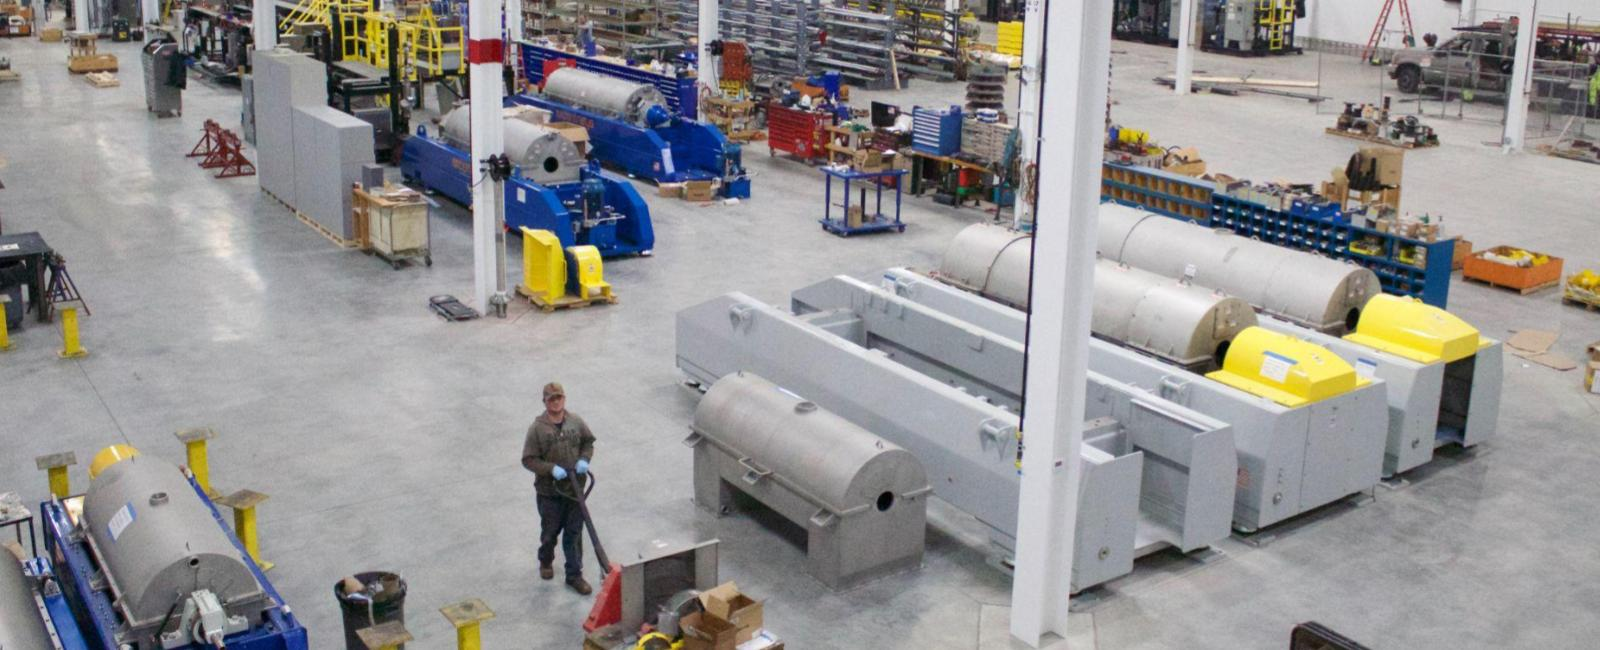 Ample Decanter Centrifuge Facility Space